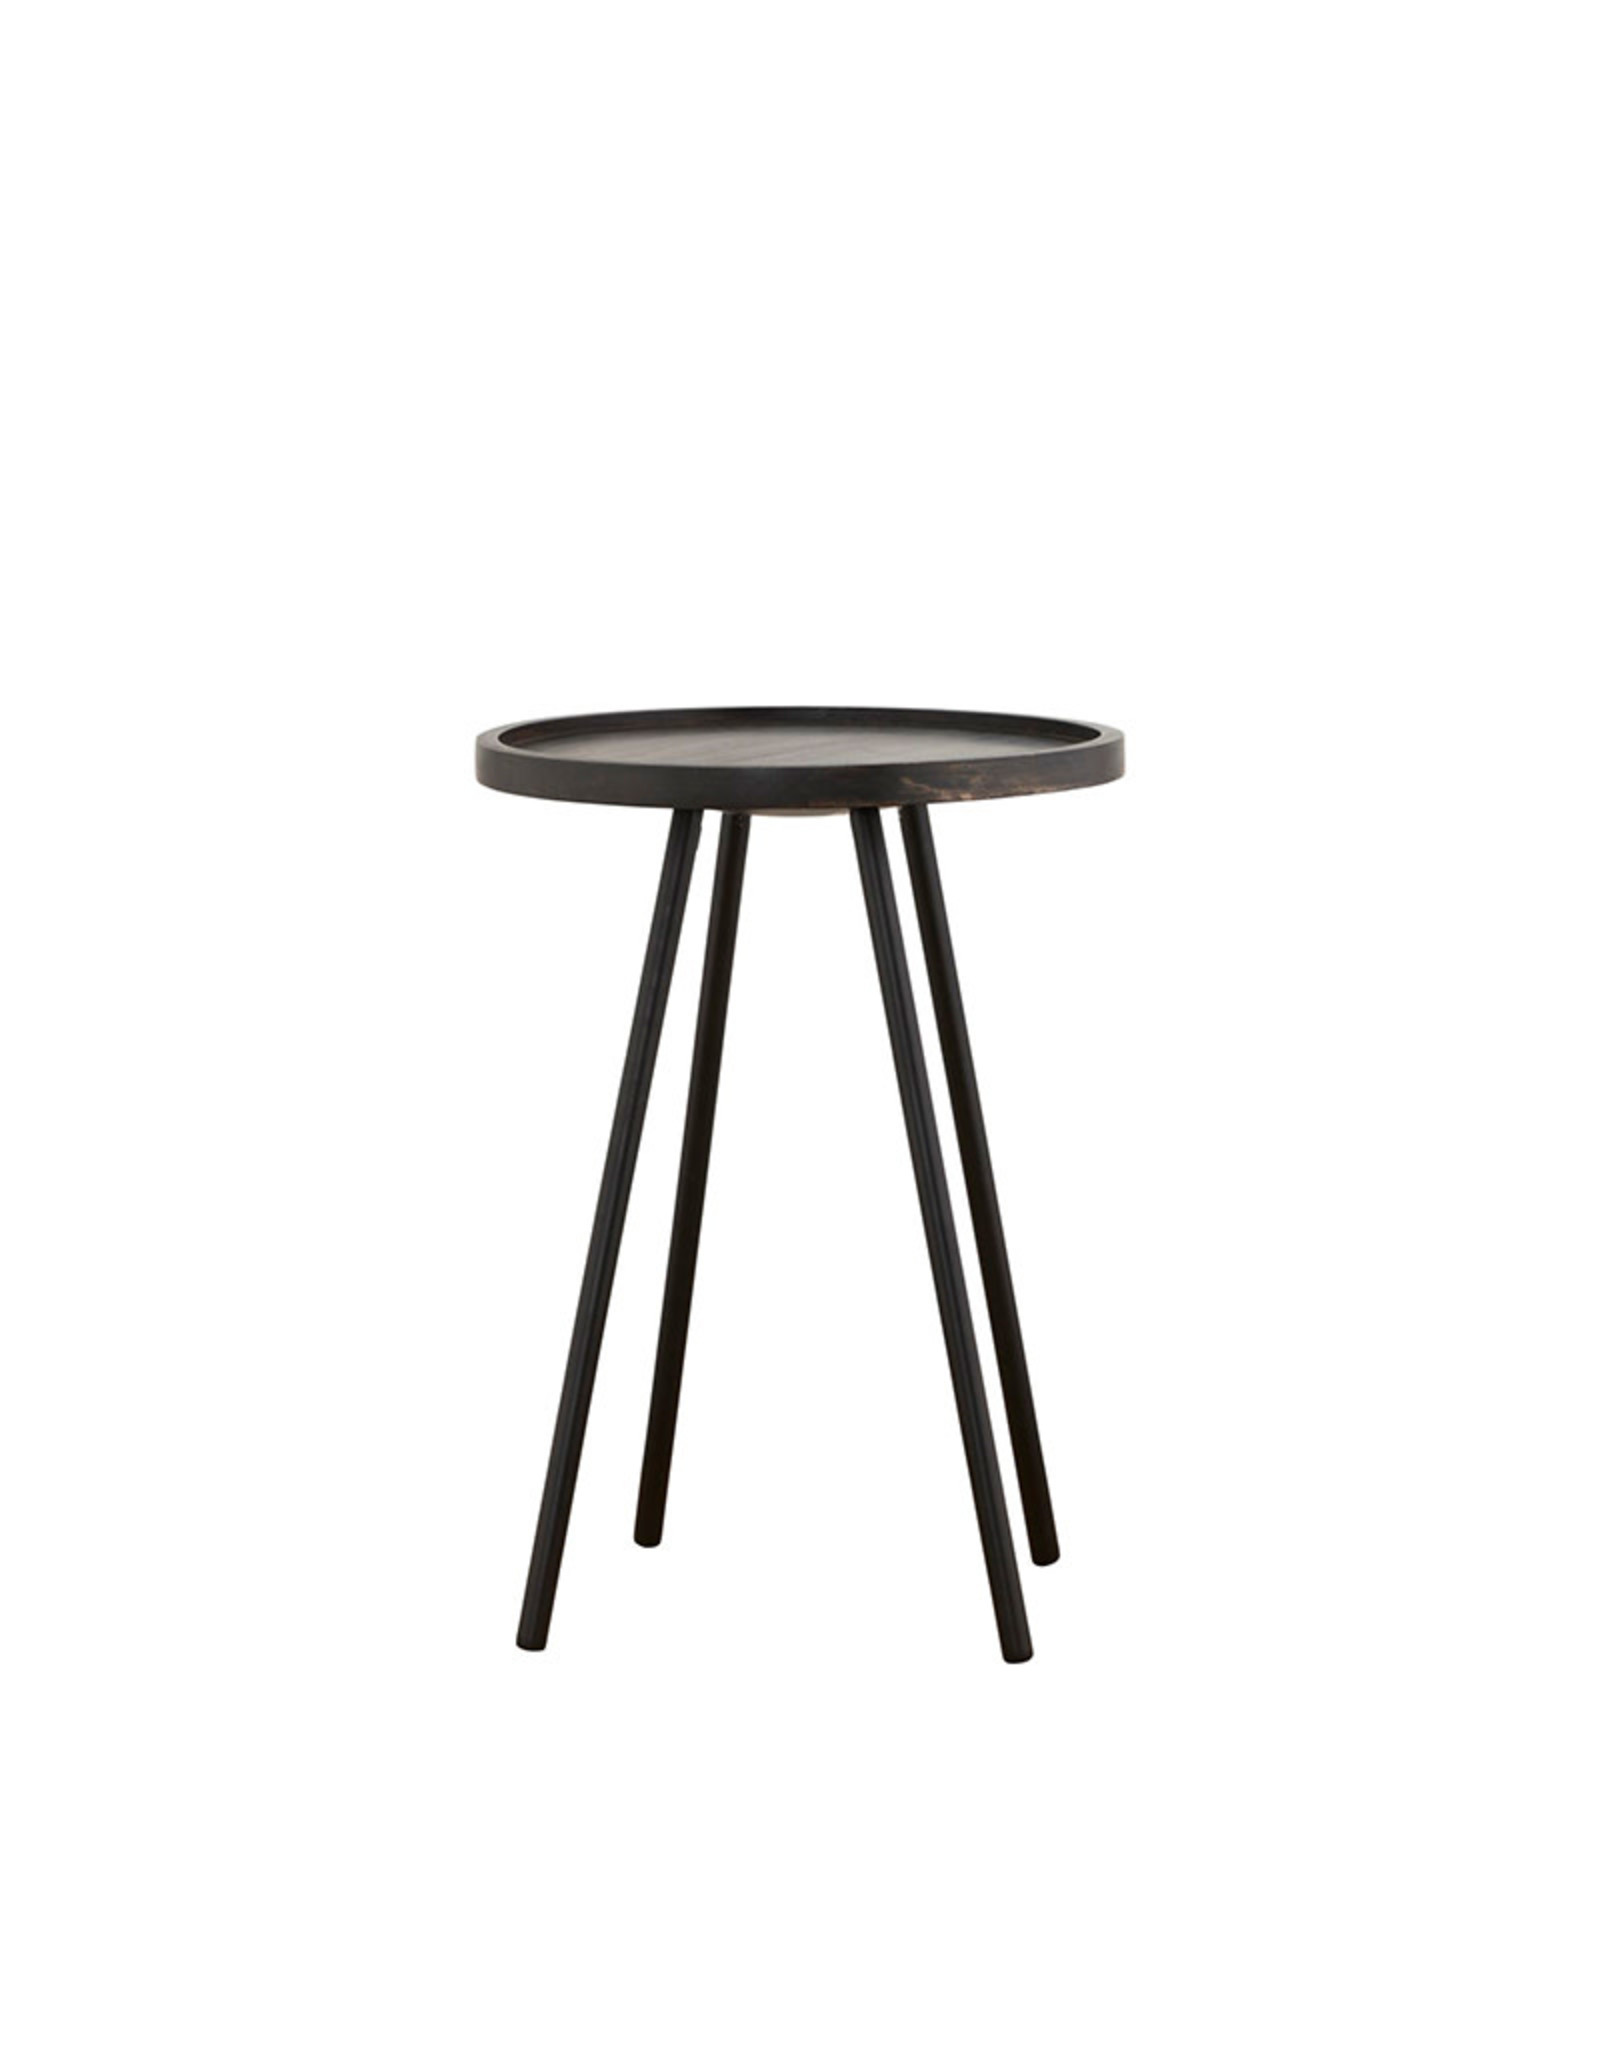 HOUSE DOCTOR HOUSE DOCTOR JUCO SIDE TABLE S